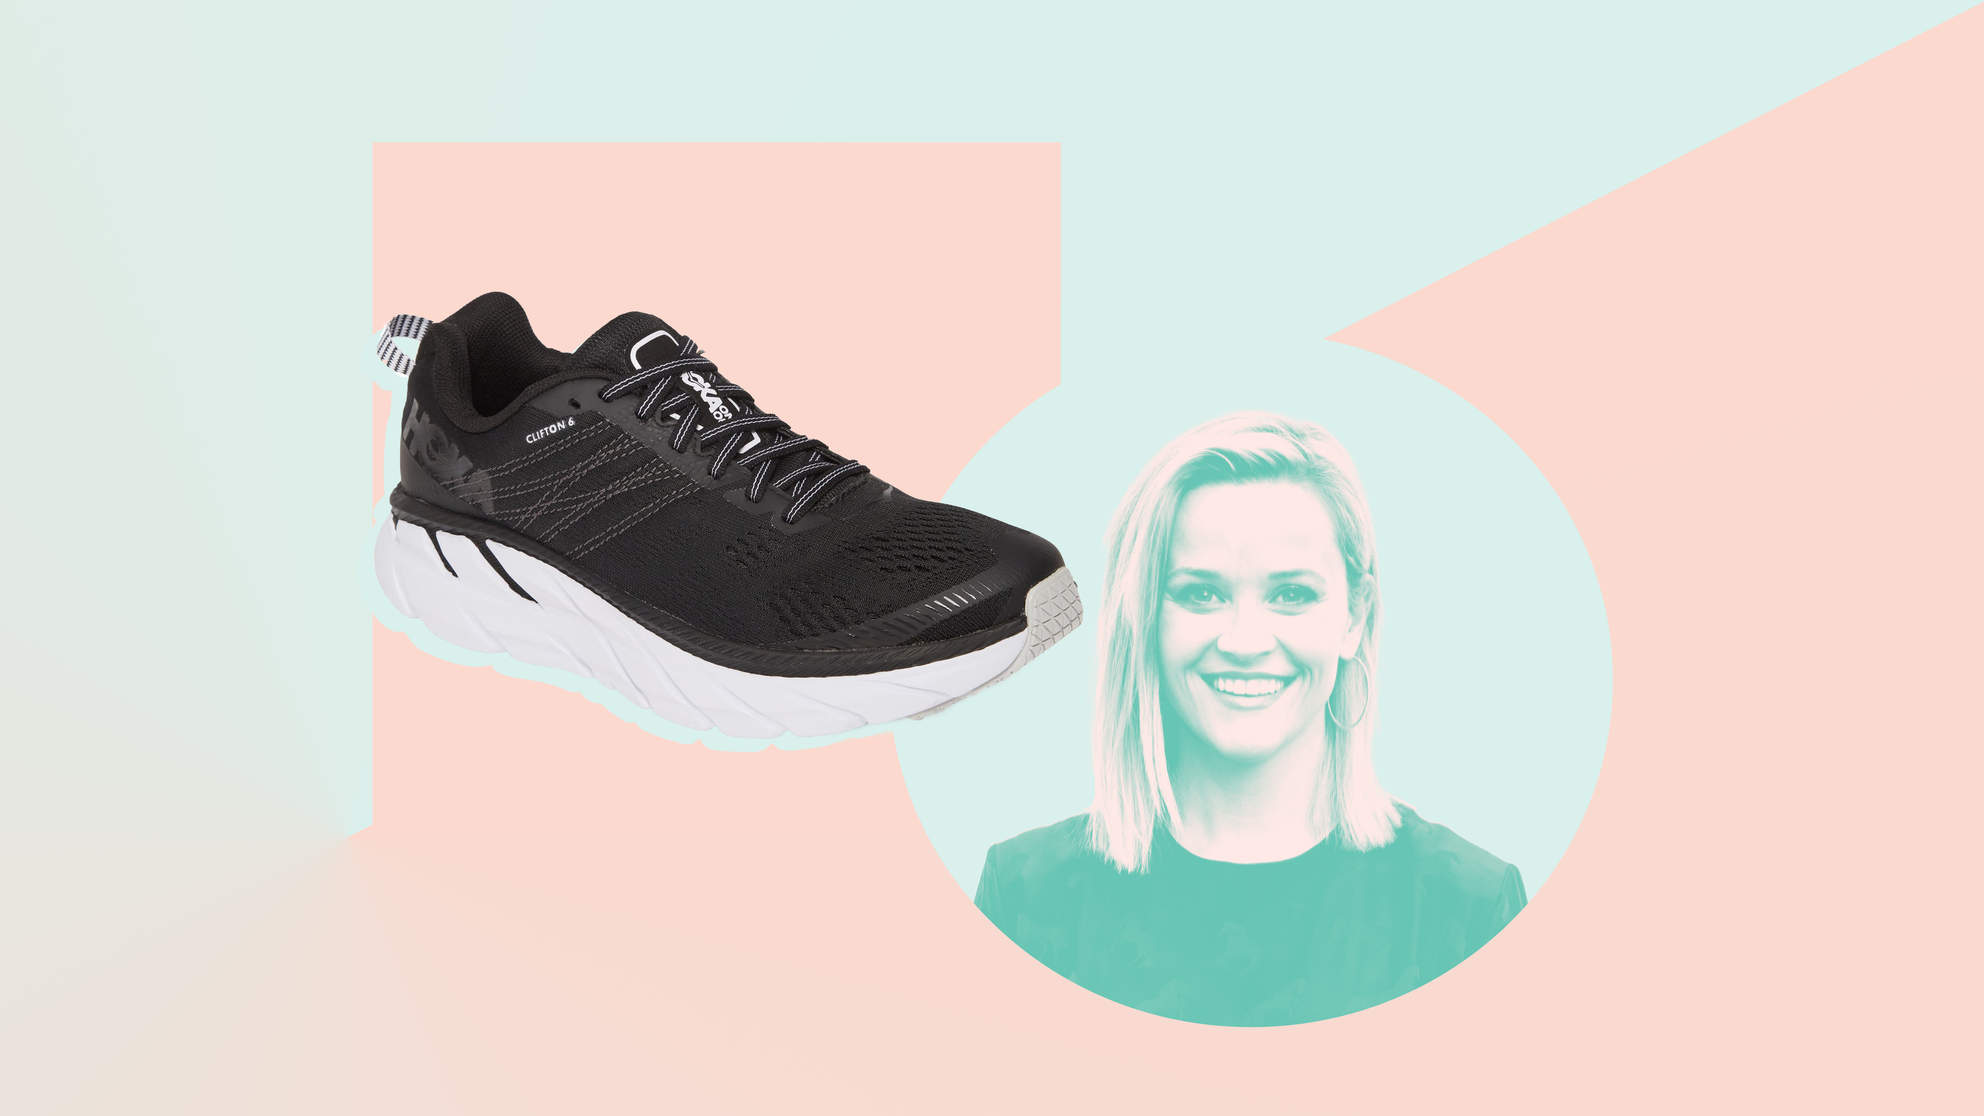 reese-witherspoon-hoka-one-clifton-running-shoe reese-witherspoon hoka-one clifton-running-shoe